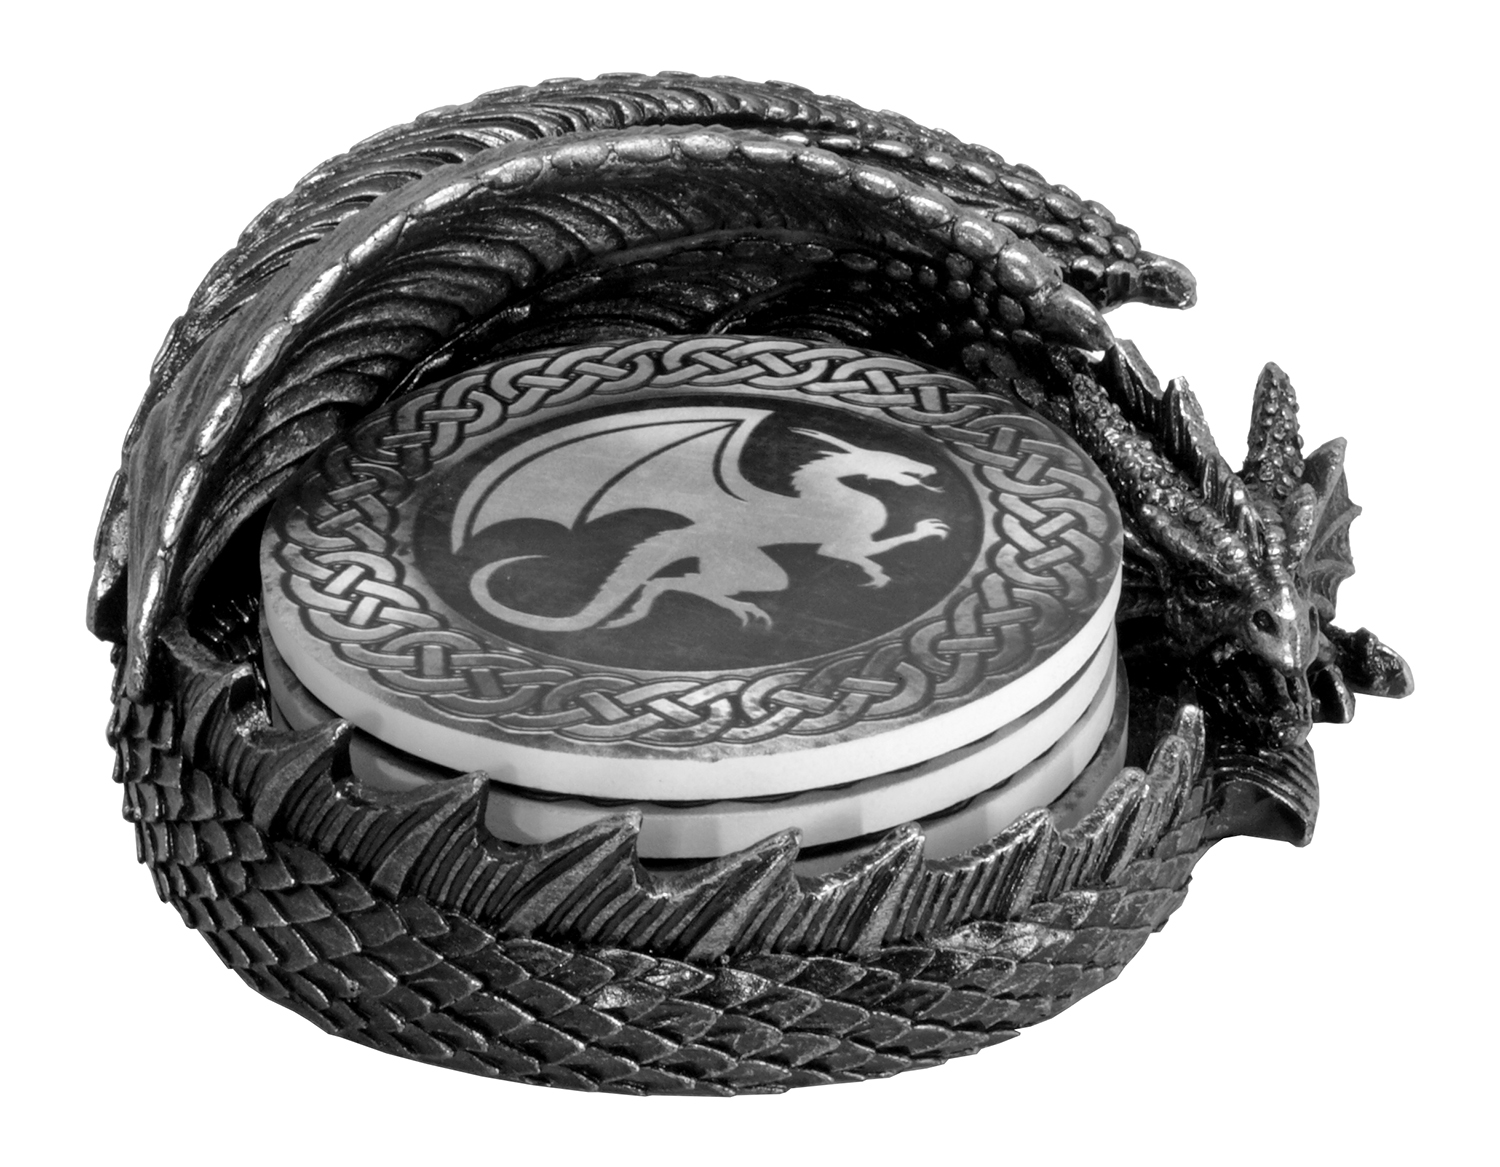 Protect and Serve - Dragon Coaster Holder Figurine